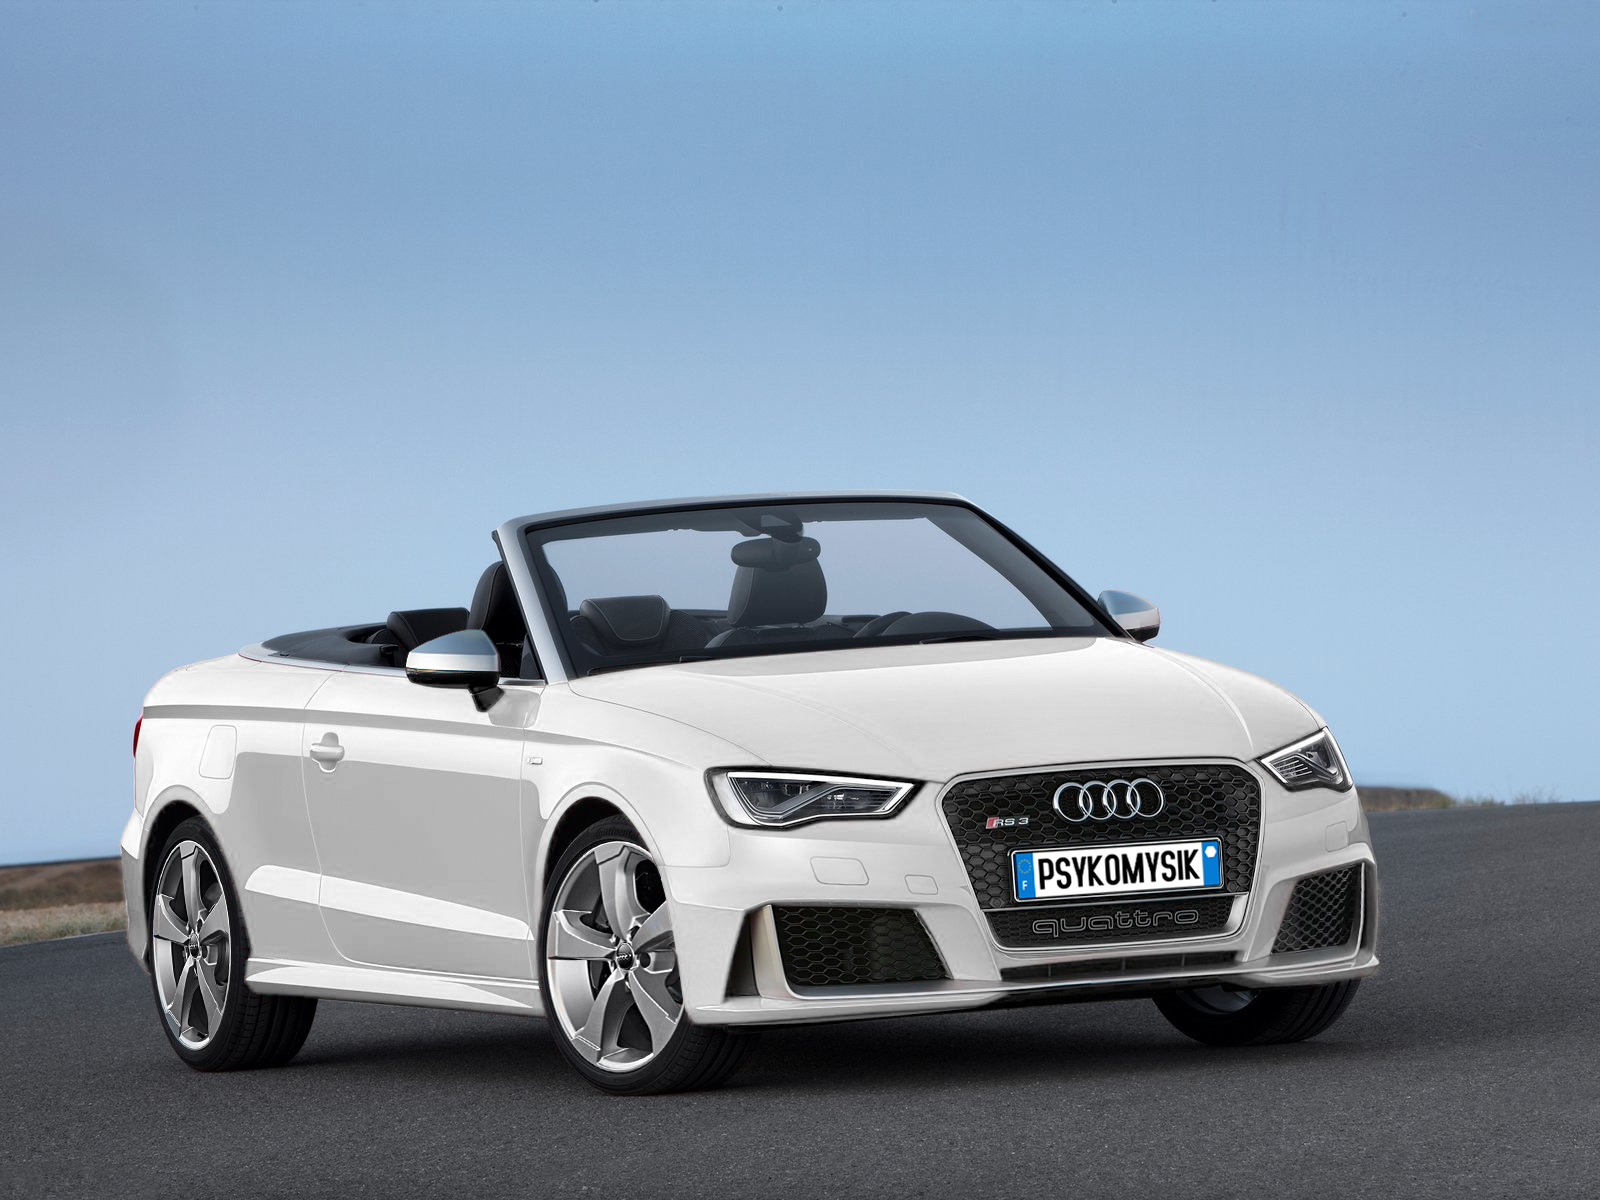 Audi Rs3 Convertible White By Psykomysik By Psykomysik